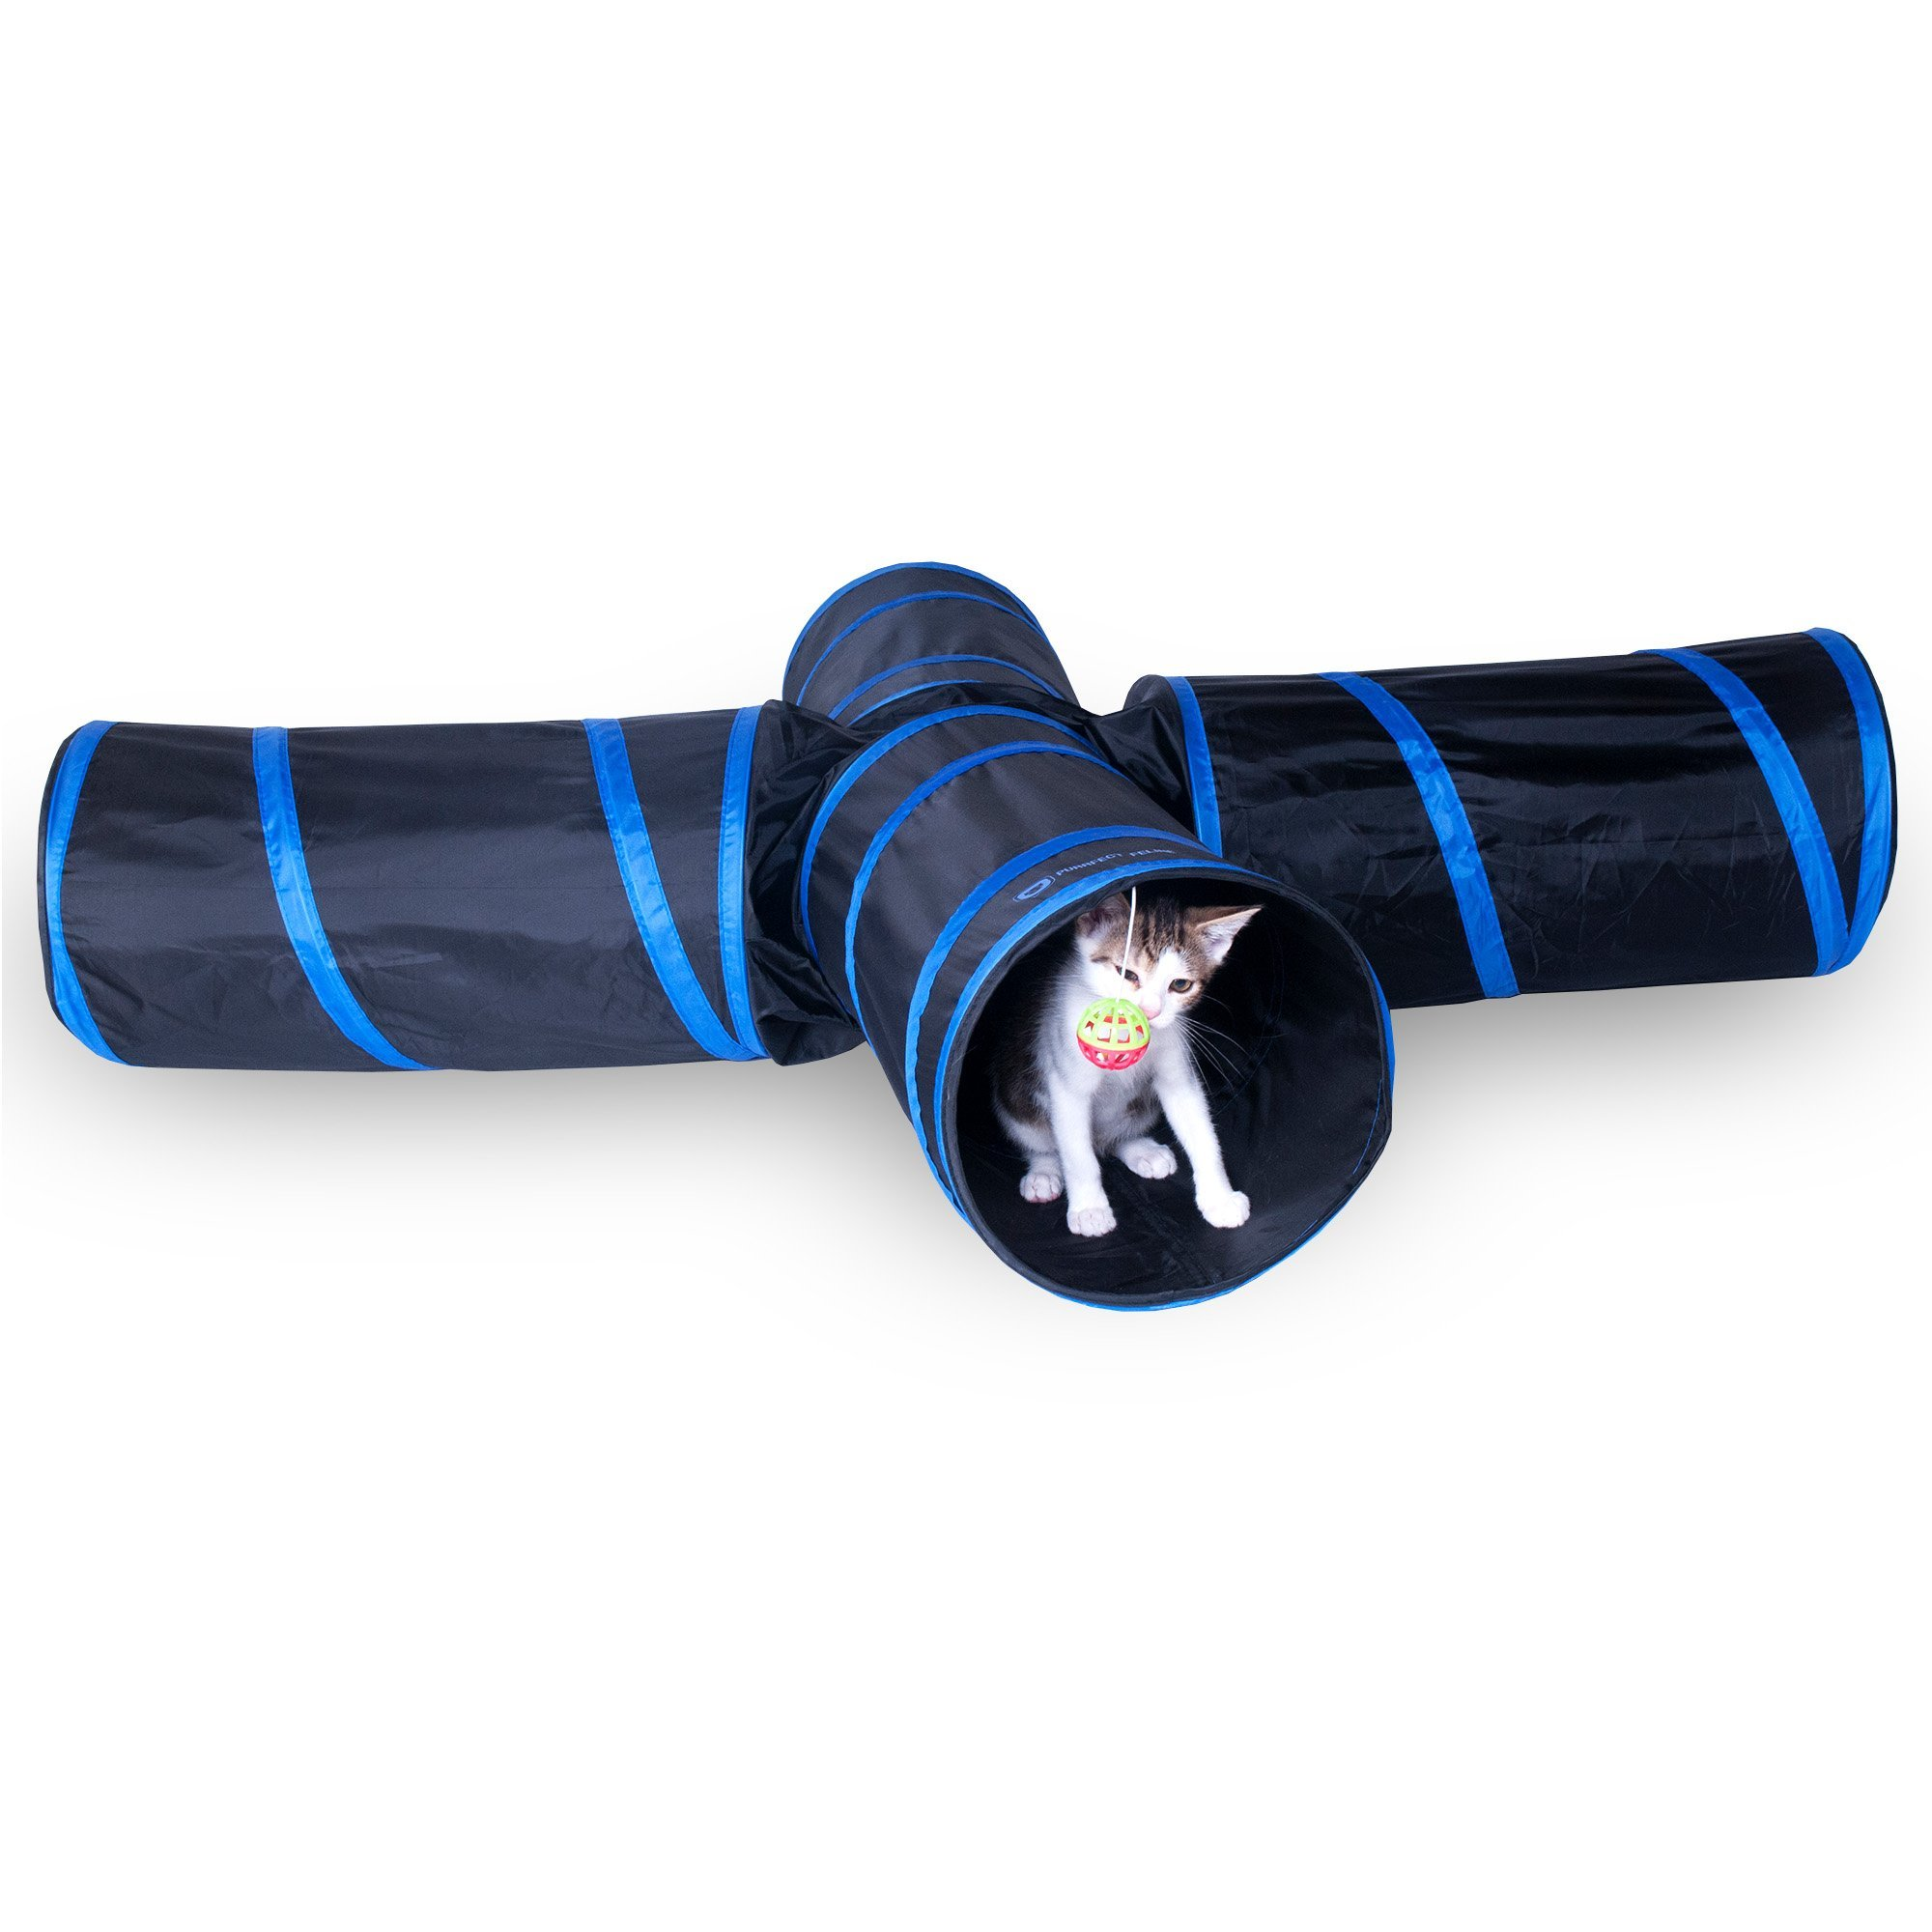 Purrfect Feline New Cat tunnel Design, Collapsible 4-way Cat Tunnel Toy with Crinkle (Medium, Dark Blue) by Purrfect Feline (Image #1)